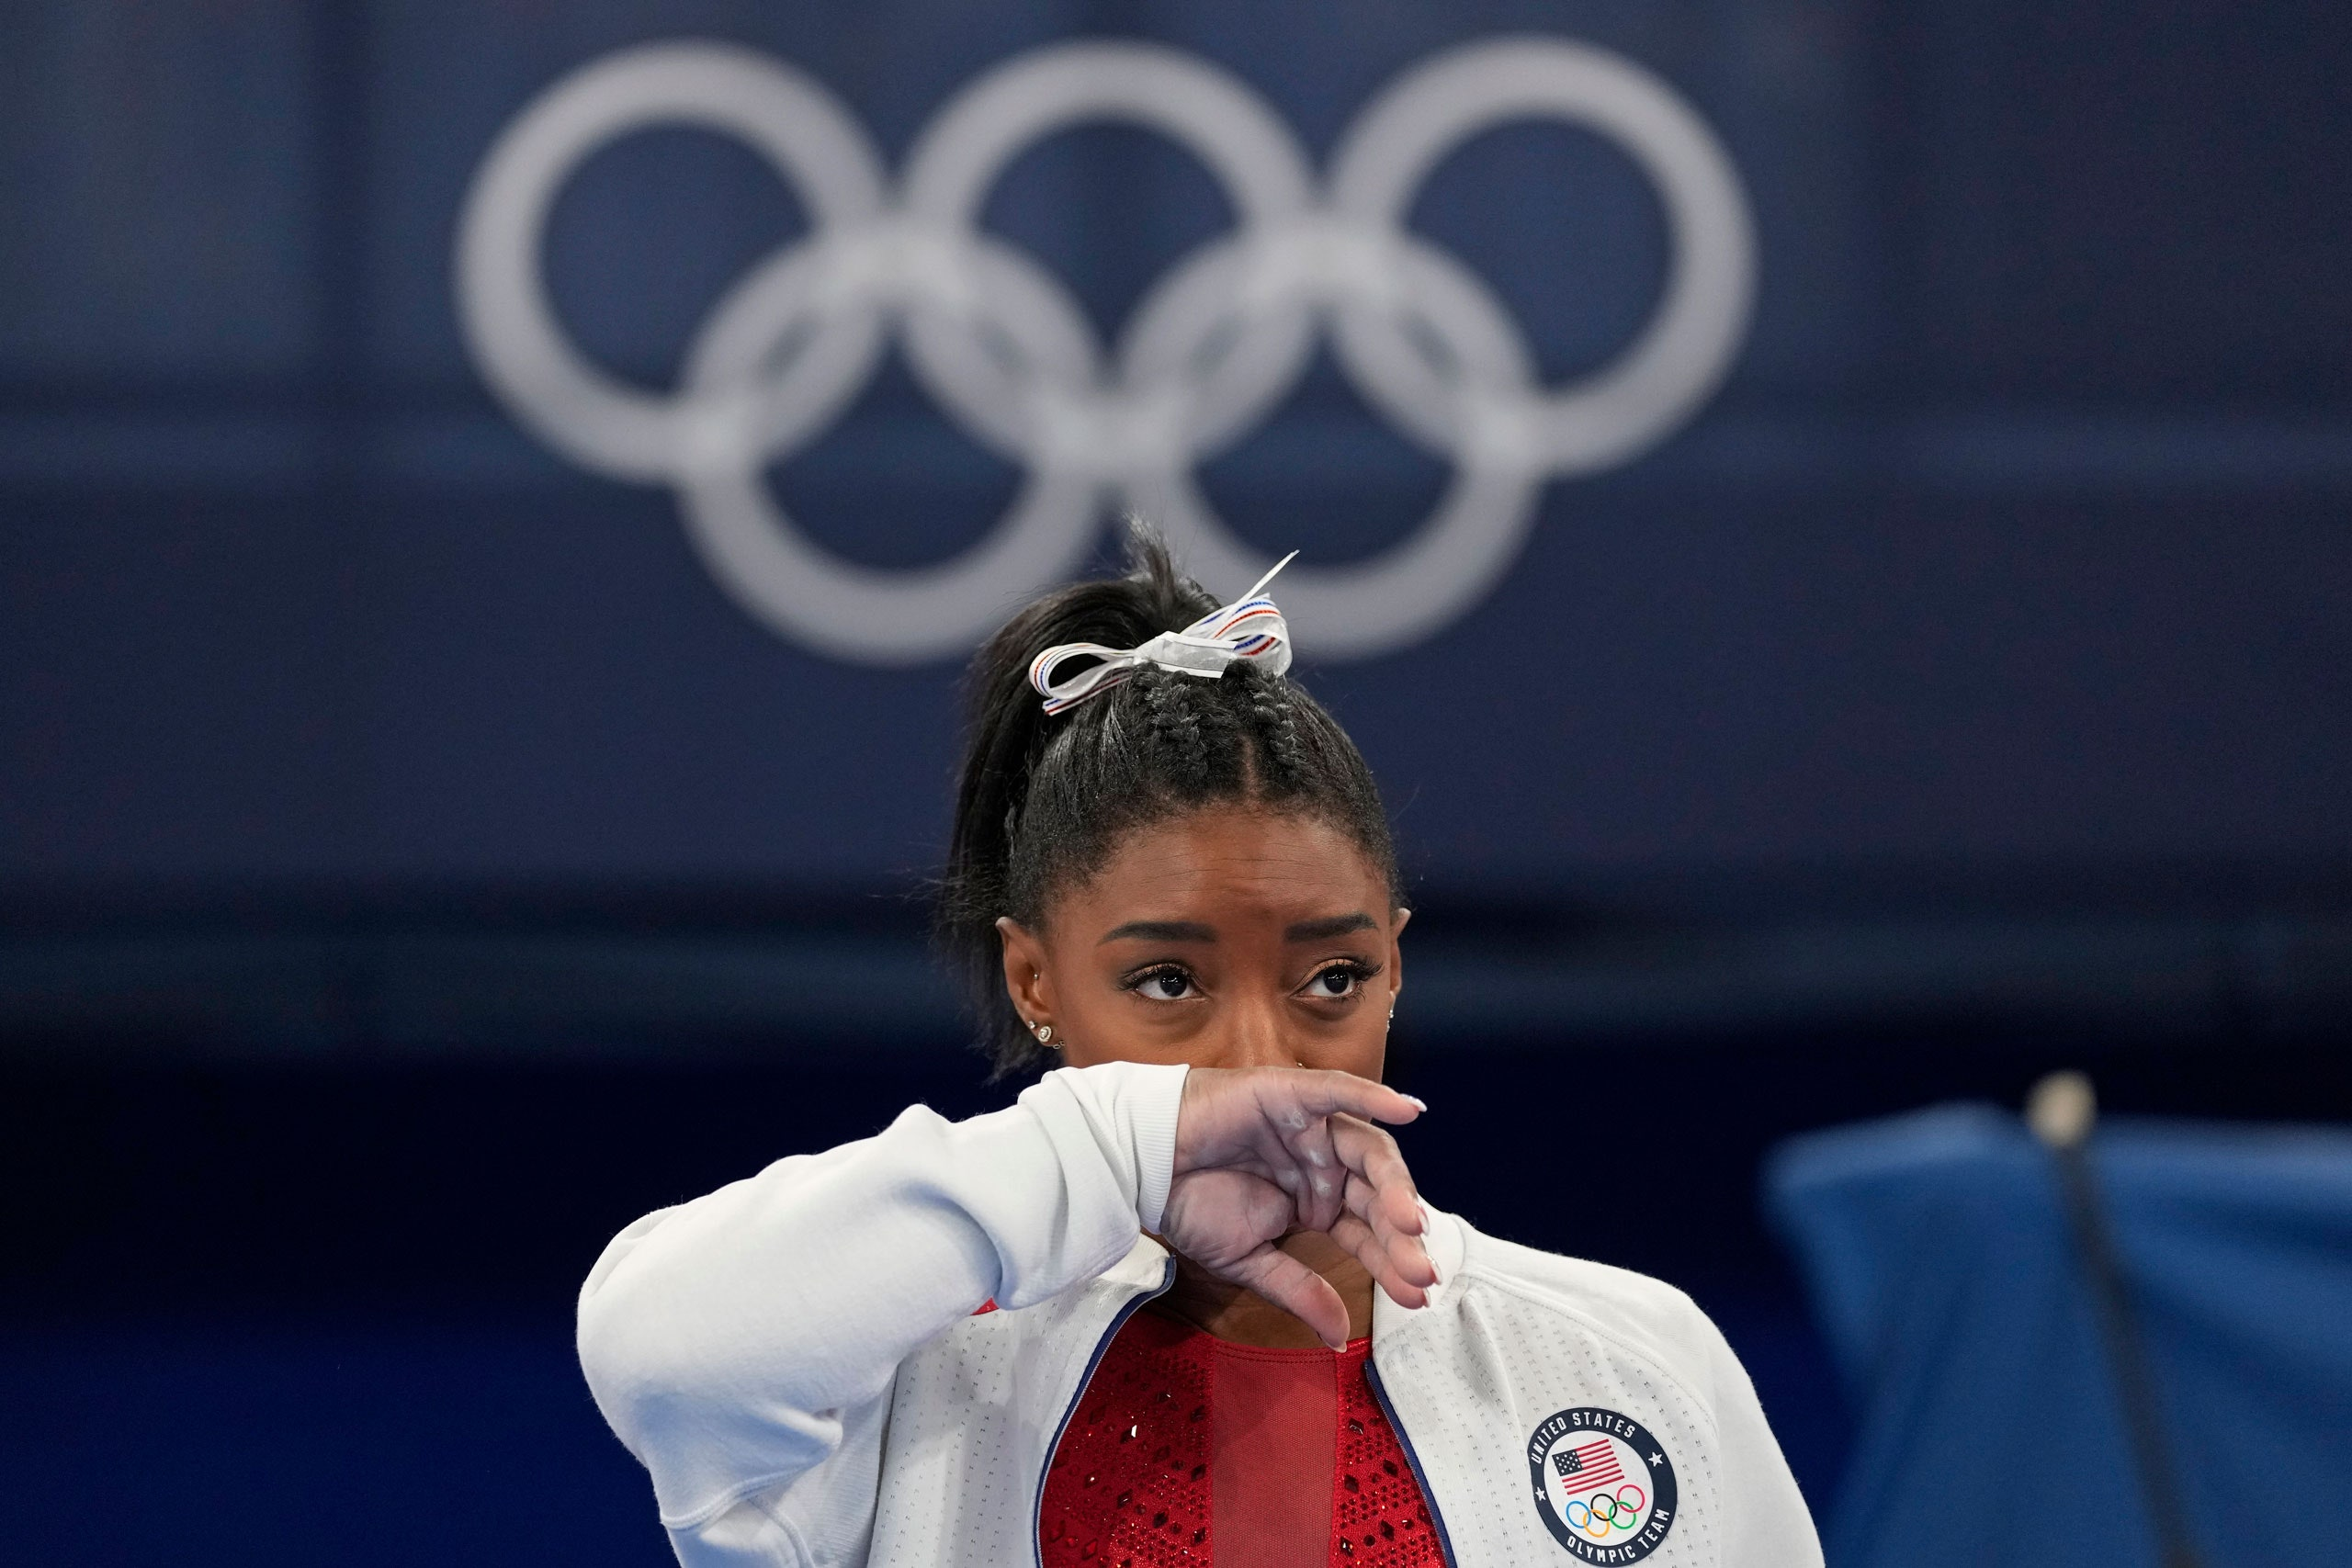 Why Simone Biles and the Startup Community Are Finally Talking About Mental Health